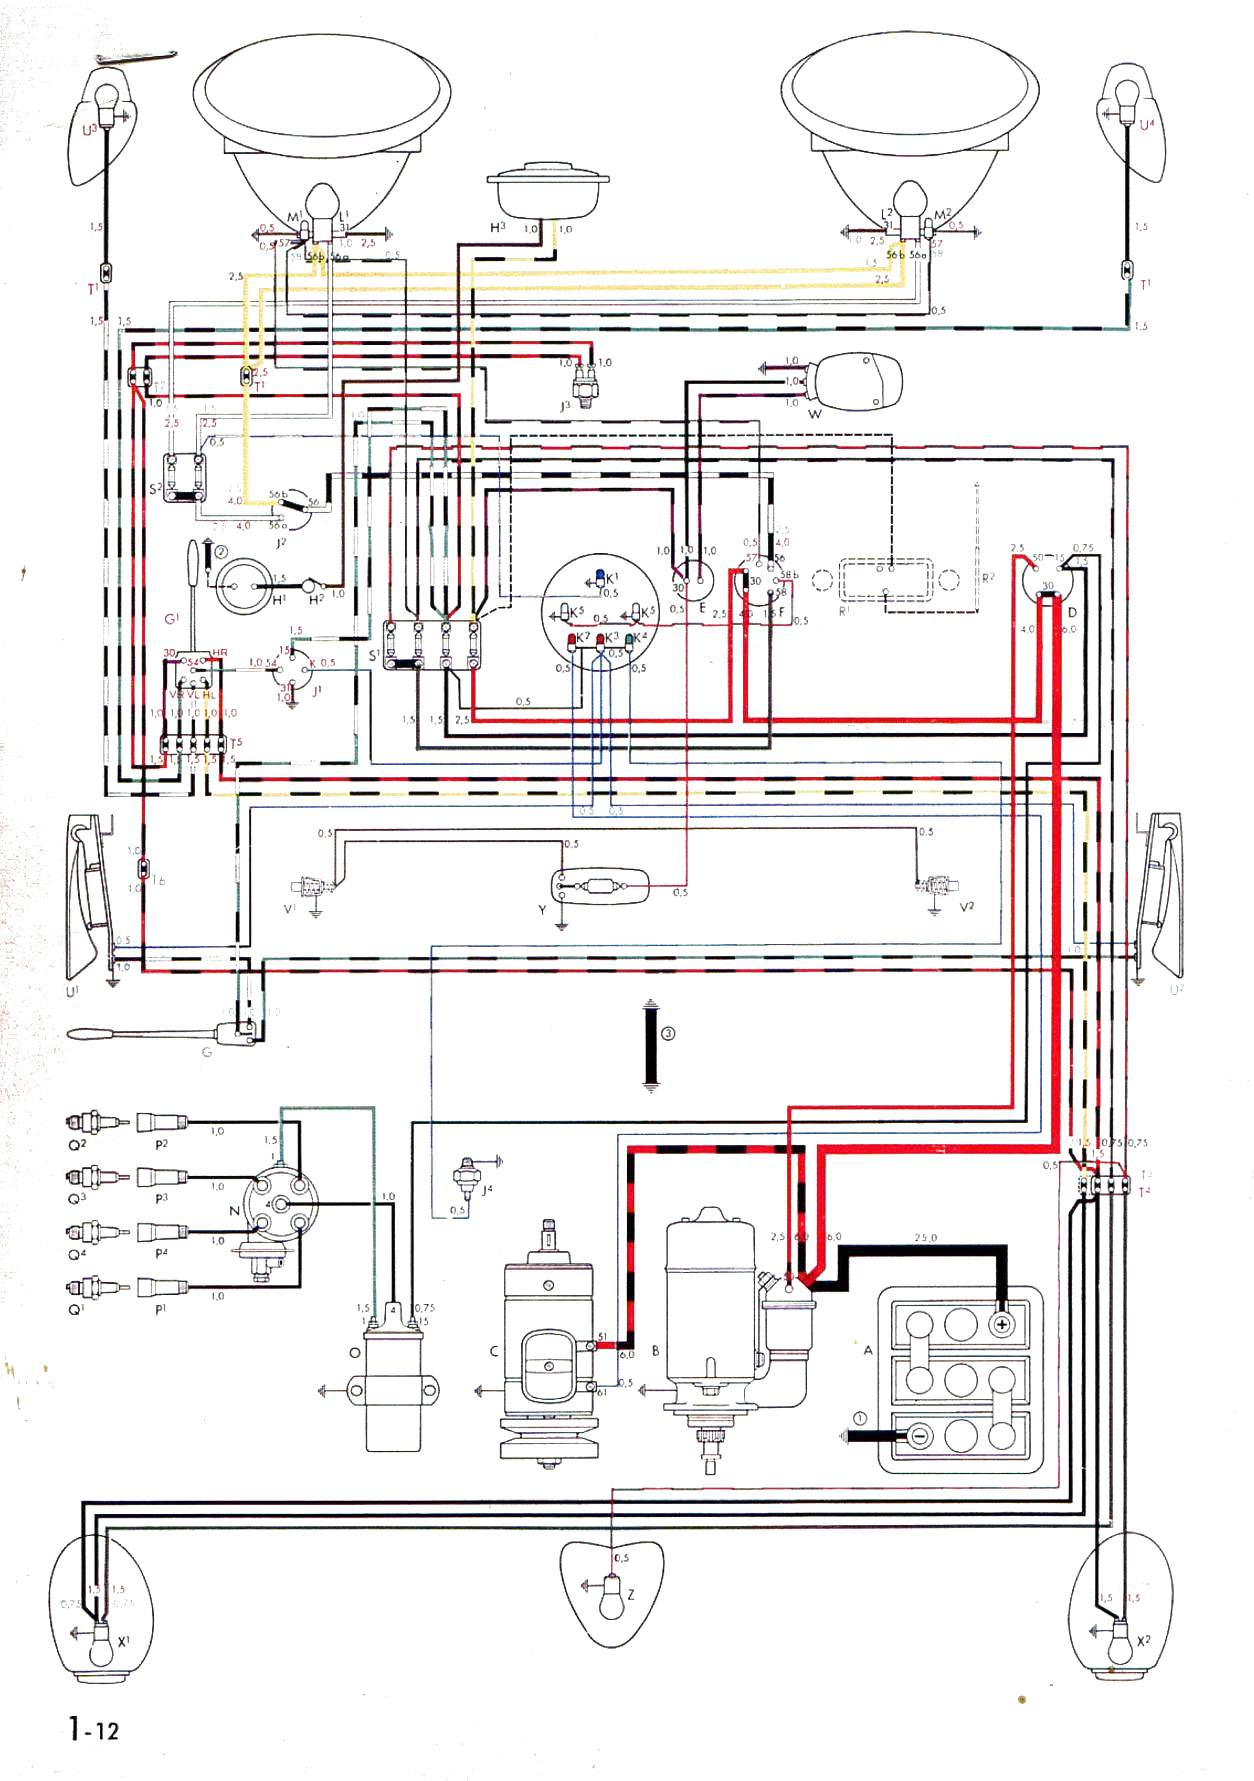 bug 55 57 vintagebus com vw bus (and other) wiring diagrams 1978 vw bus fuse box diagram at bayanpartner.co